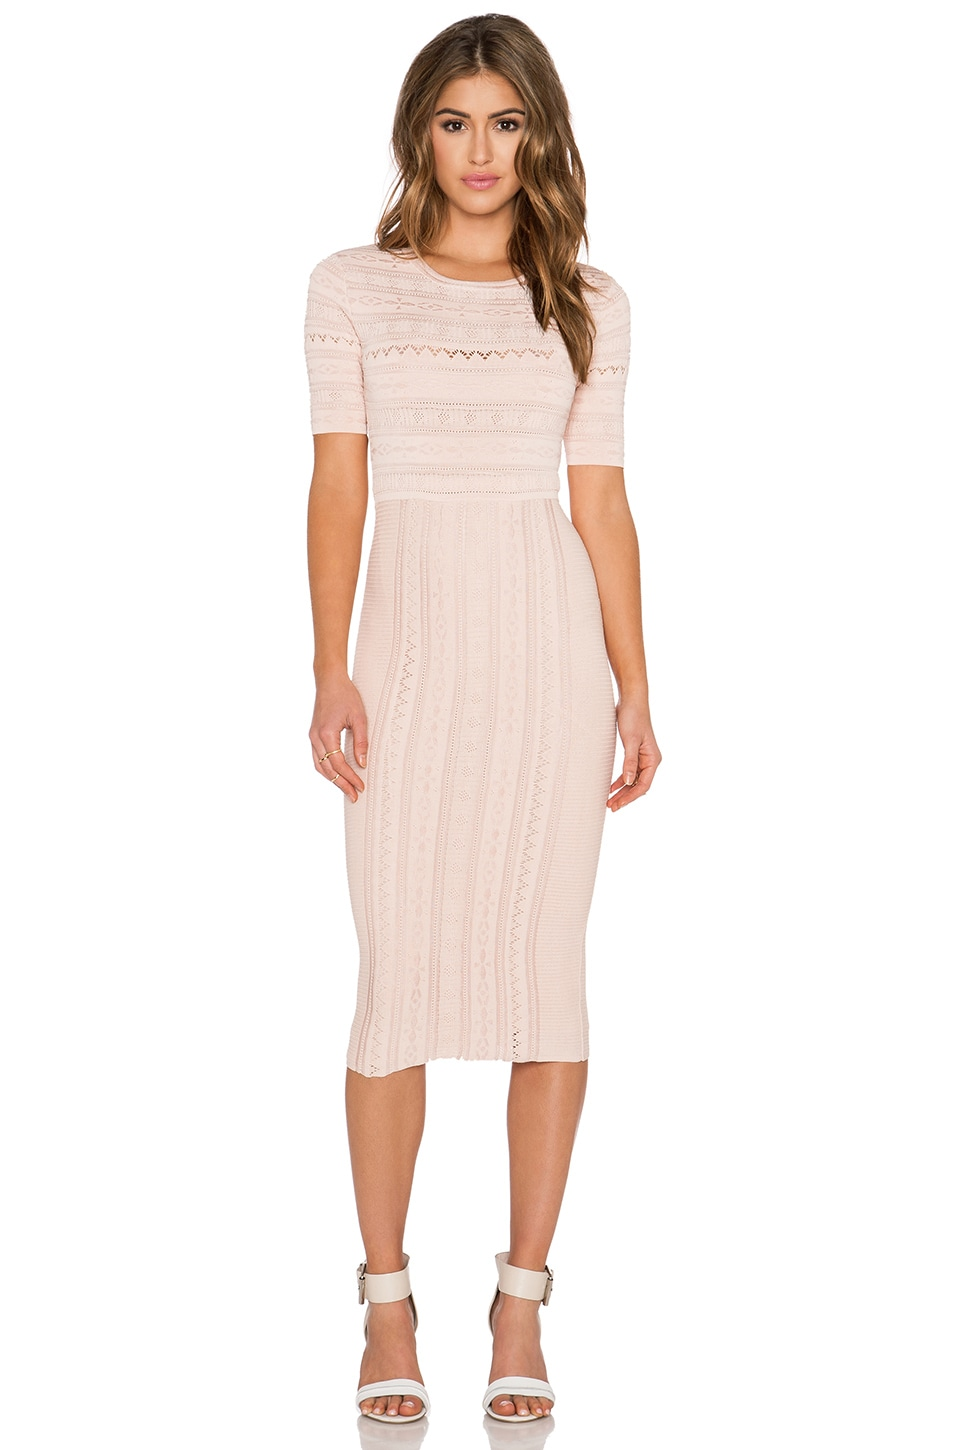 Ronny Kobo Christina Dress in Nude